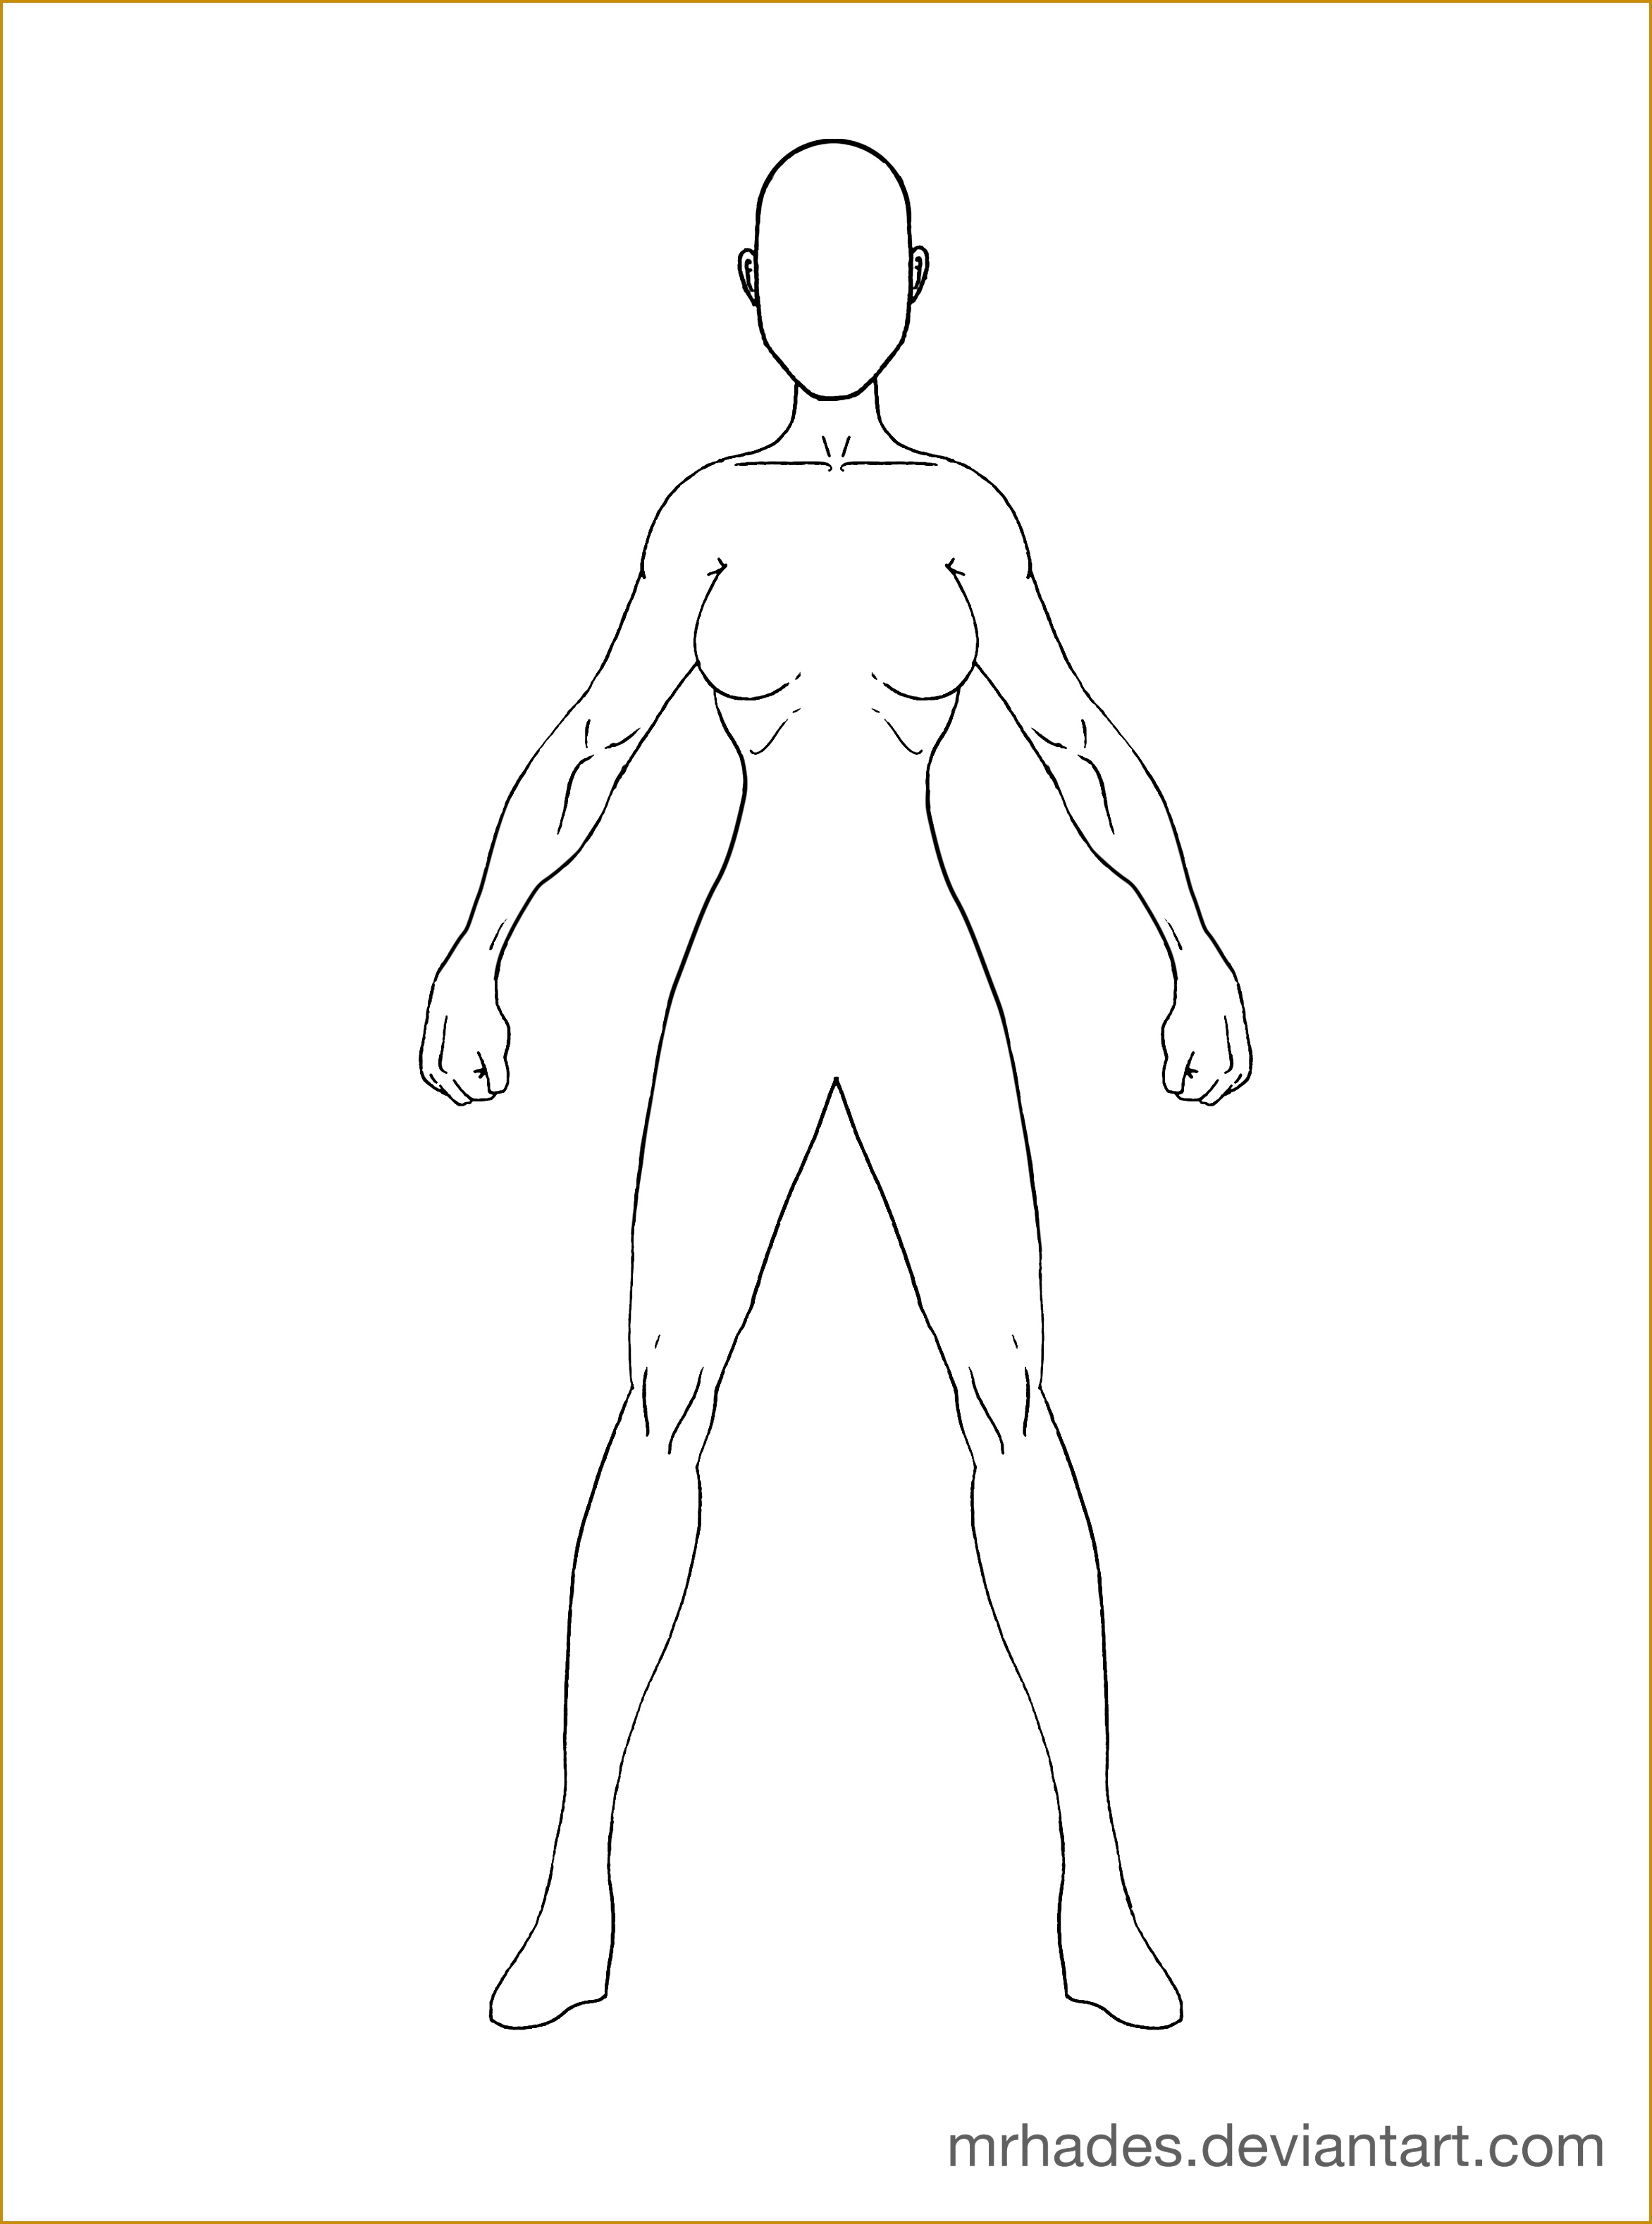 3 Woman Outline Template